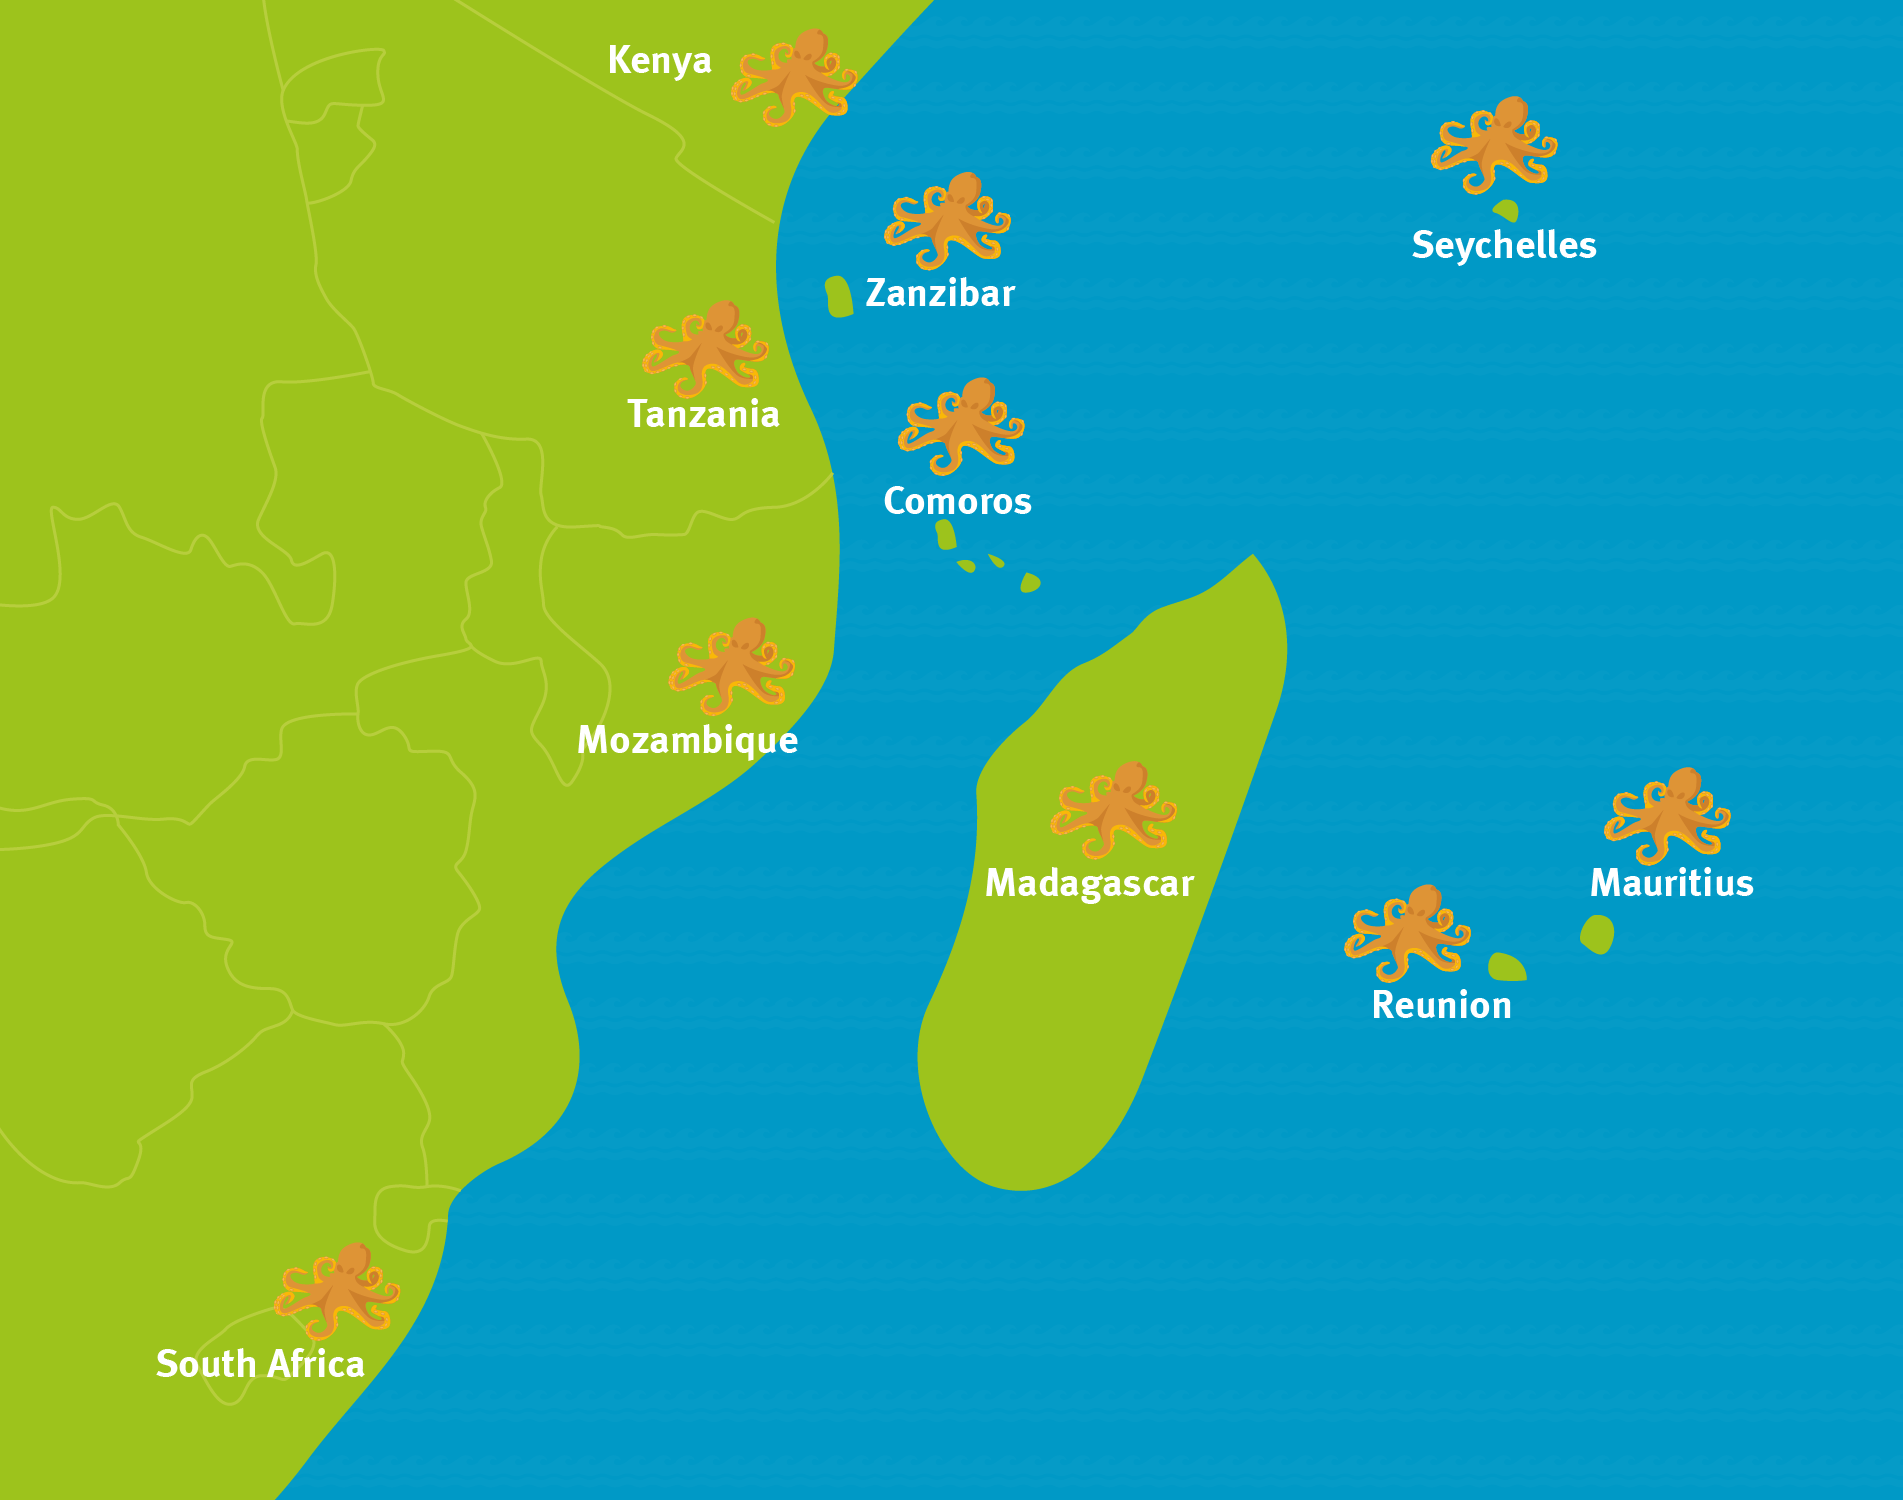 Map showing South Africa, Mozambique, Tanzania and Southwest Indian Ocean islands, with octopus icons.